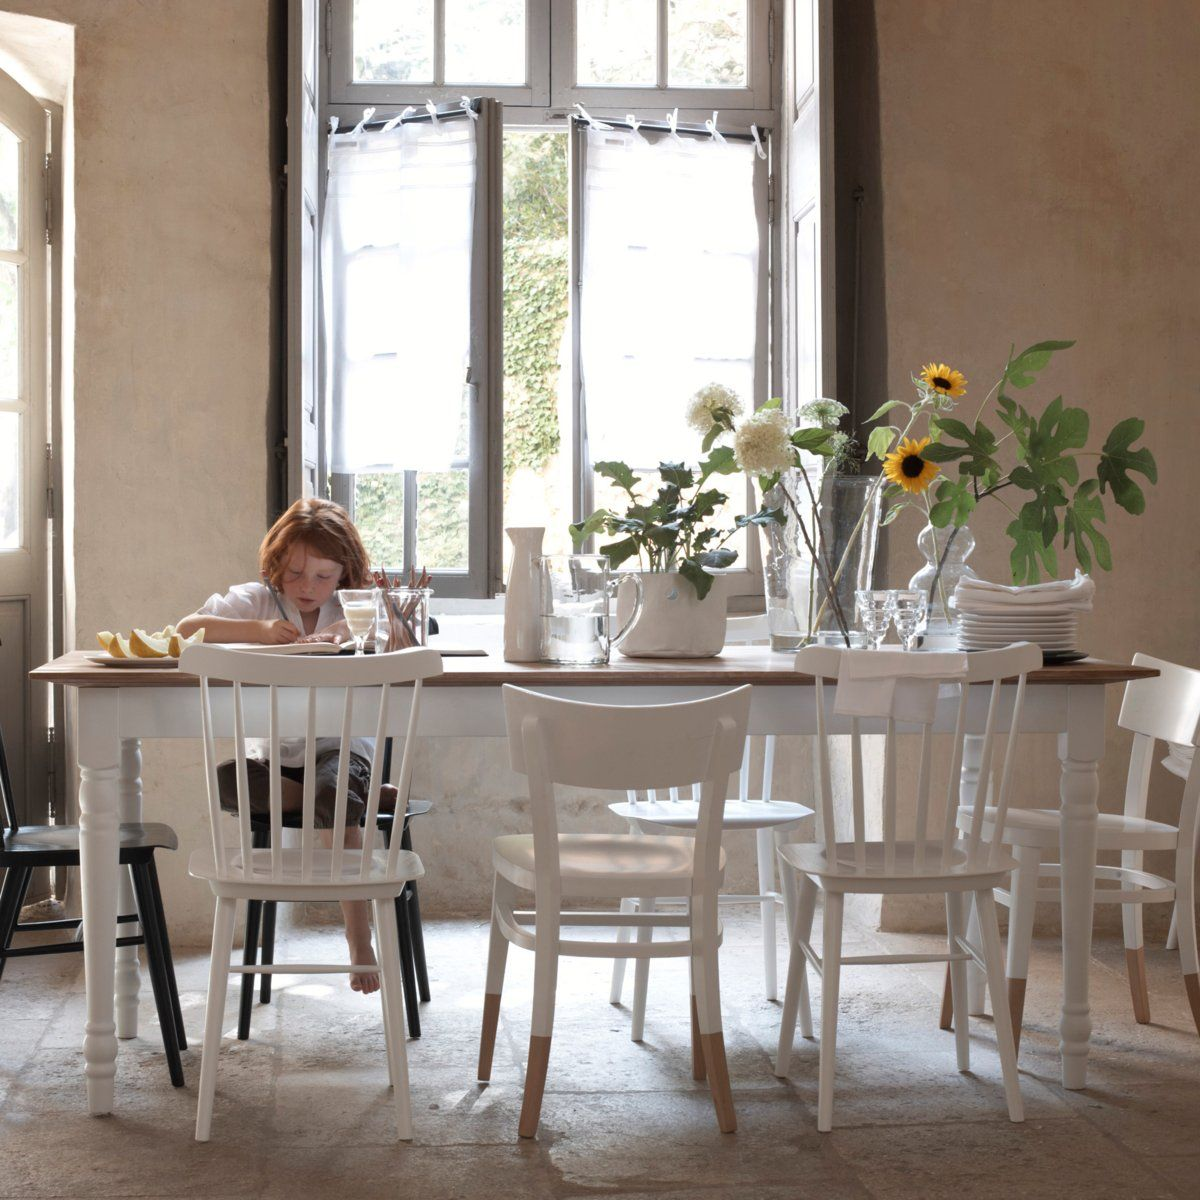 Chaises blanches d pareill es tables chaises - 6 chaises blanches ...